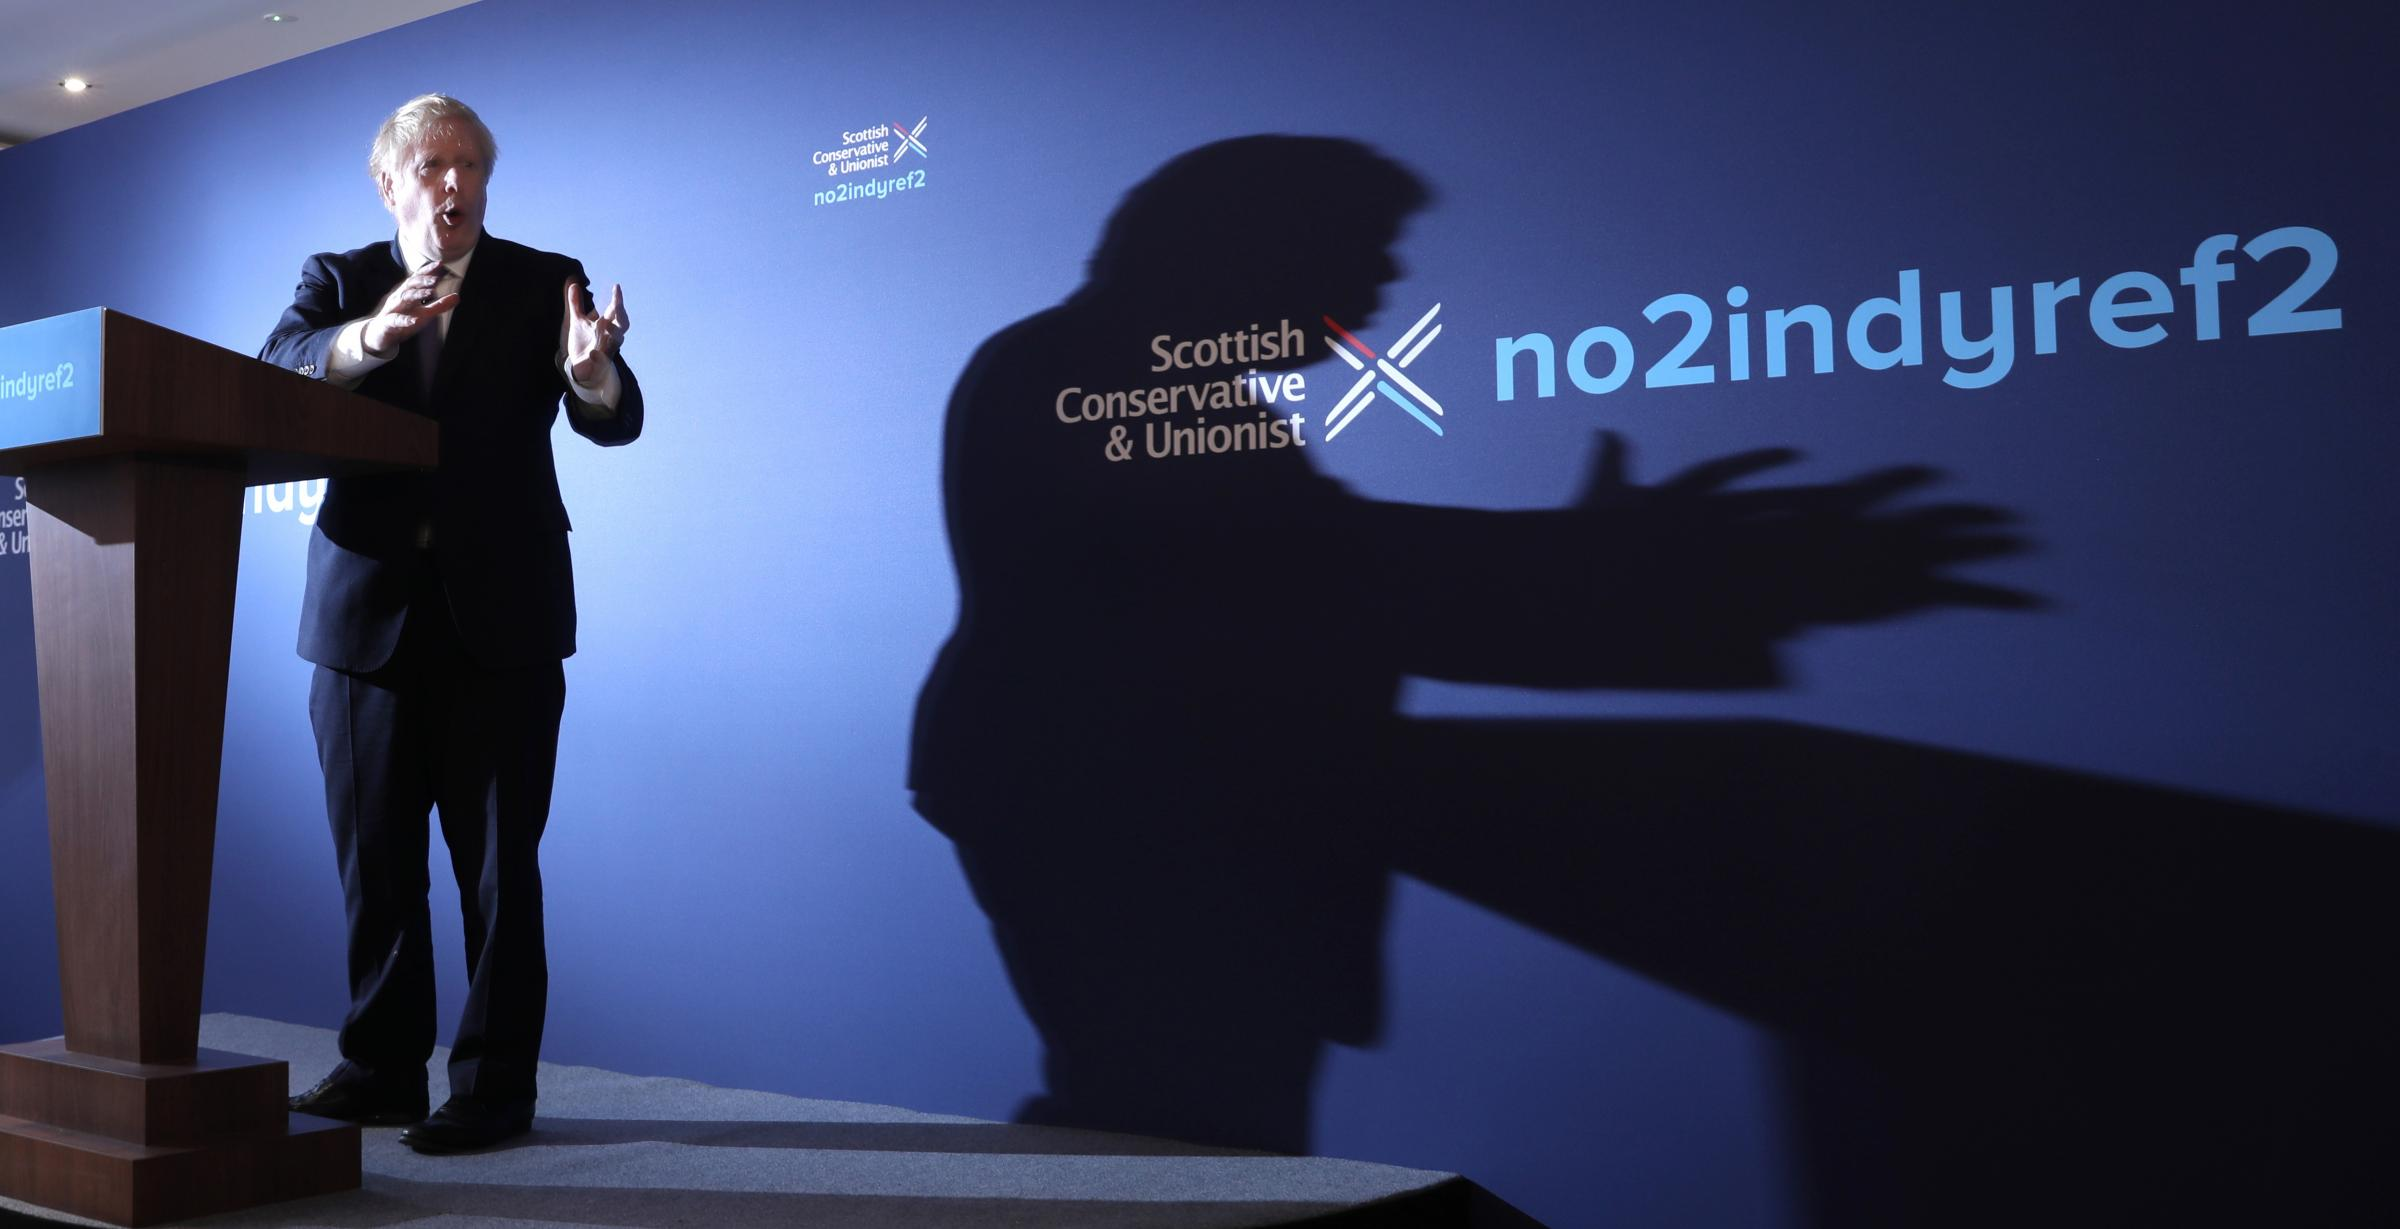 FACT CHECK: Claim 'indyref2 is causing Scotland to stagnate'